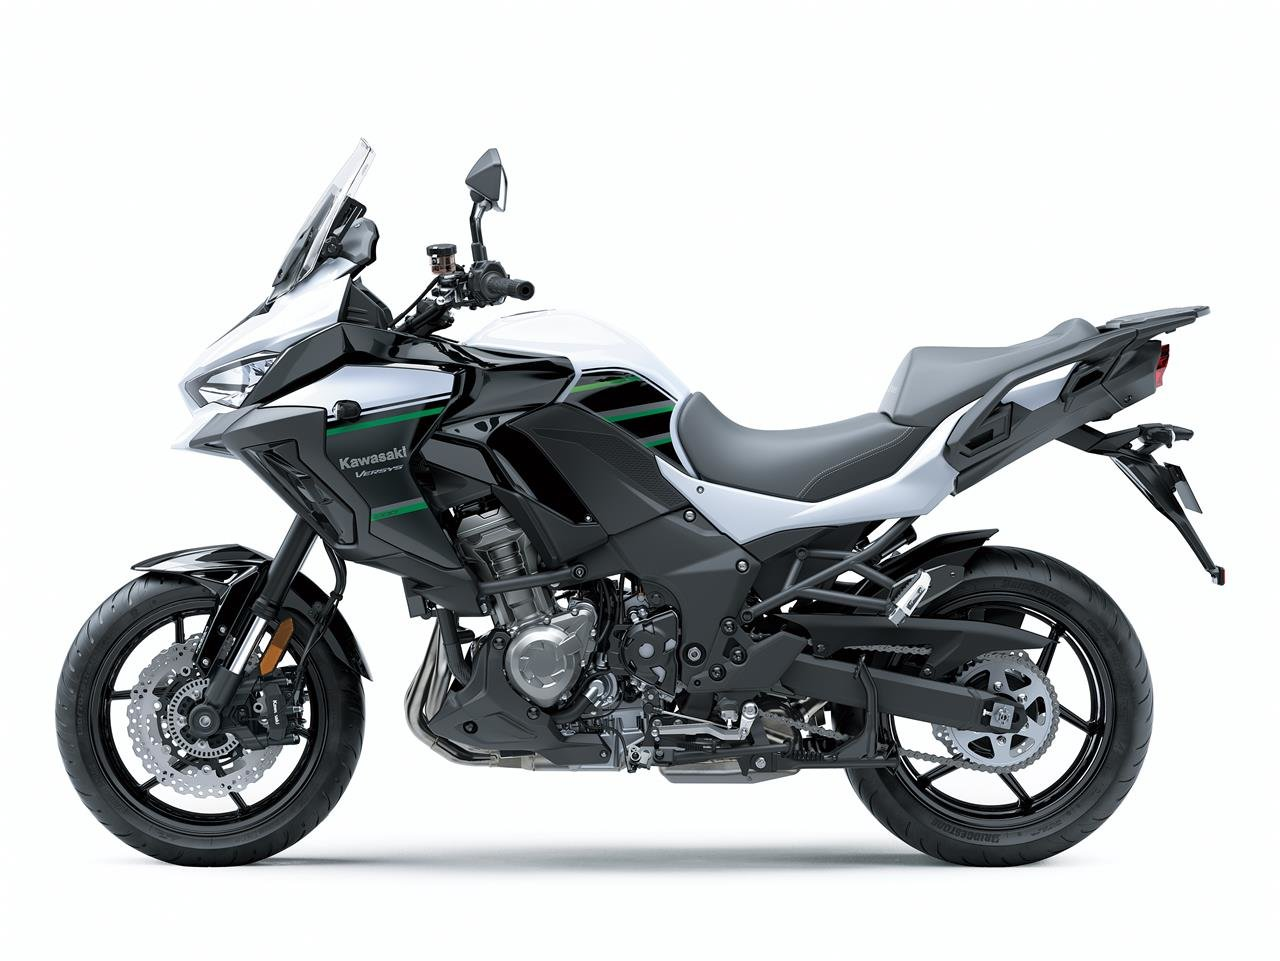 New 2020 Kawasaki Versys 1000**£700 PAID & FREE Delivery* For Sale (picture 3 of 6)